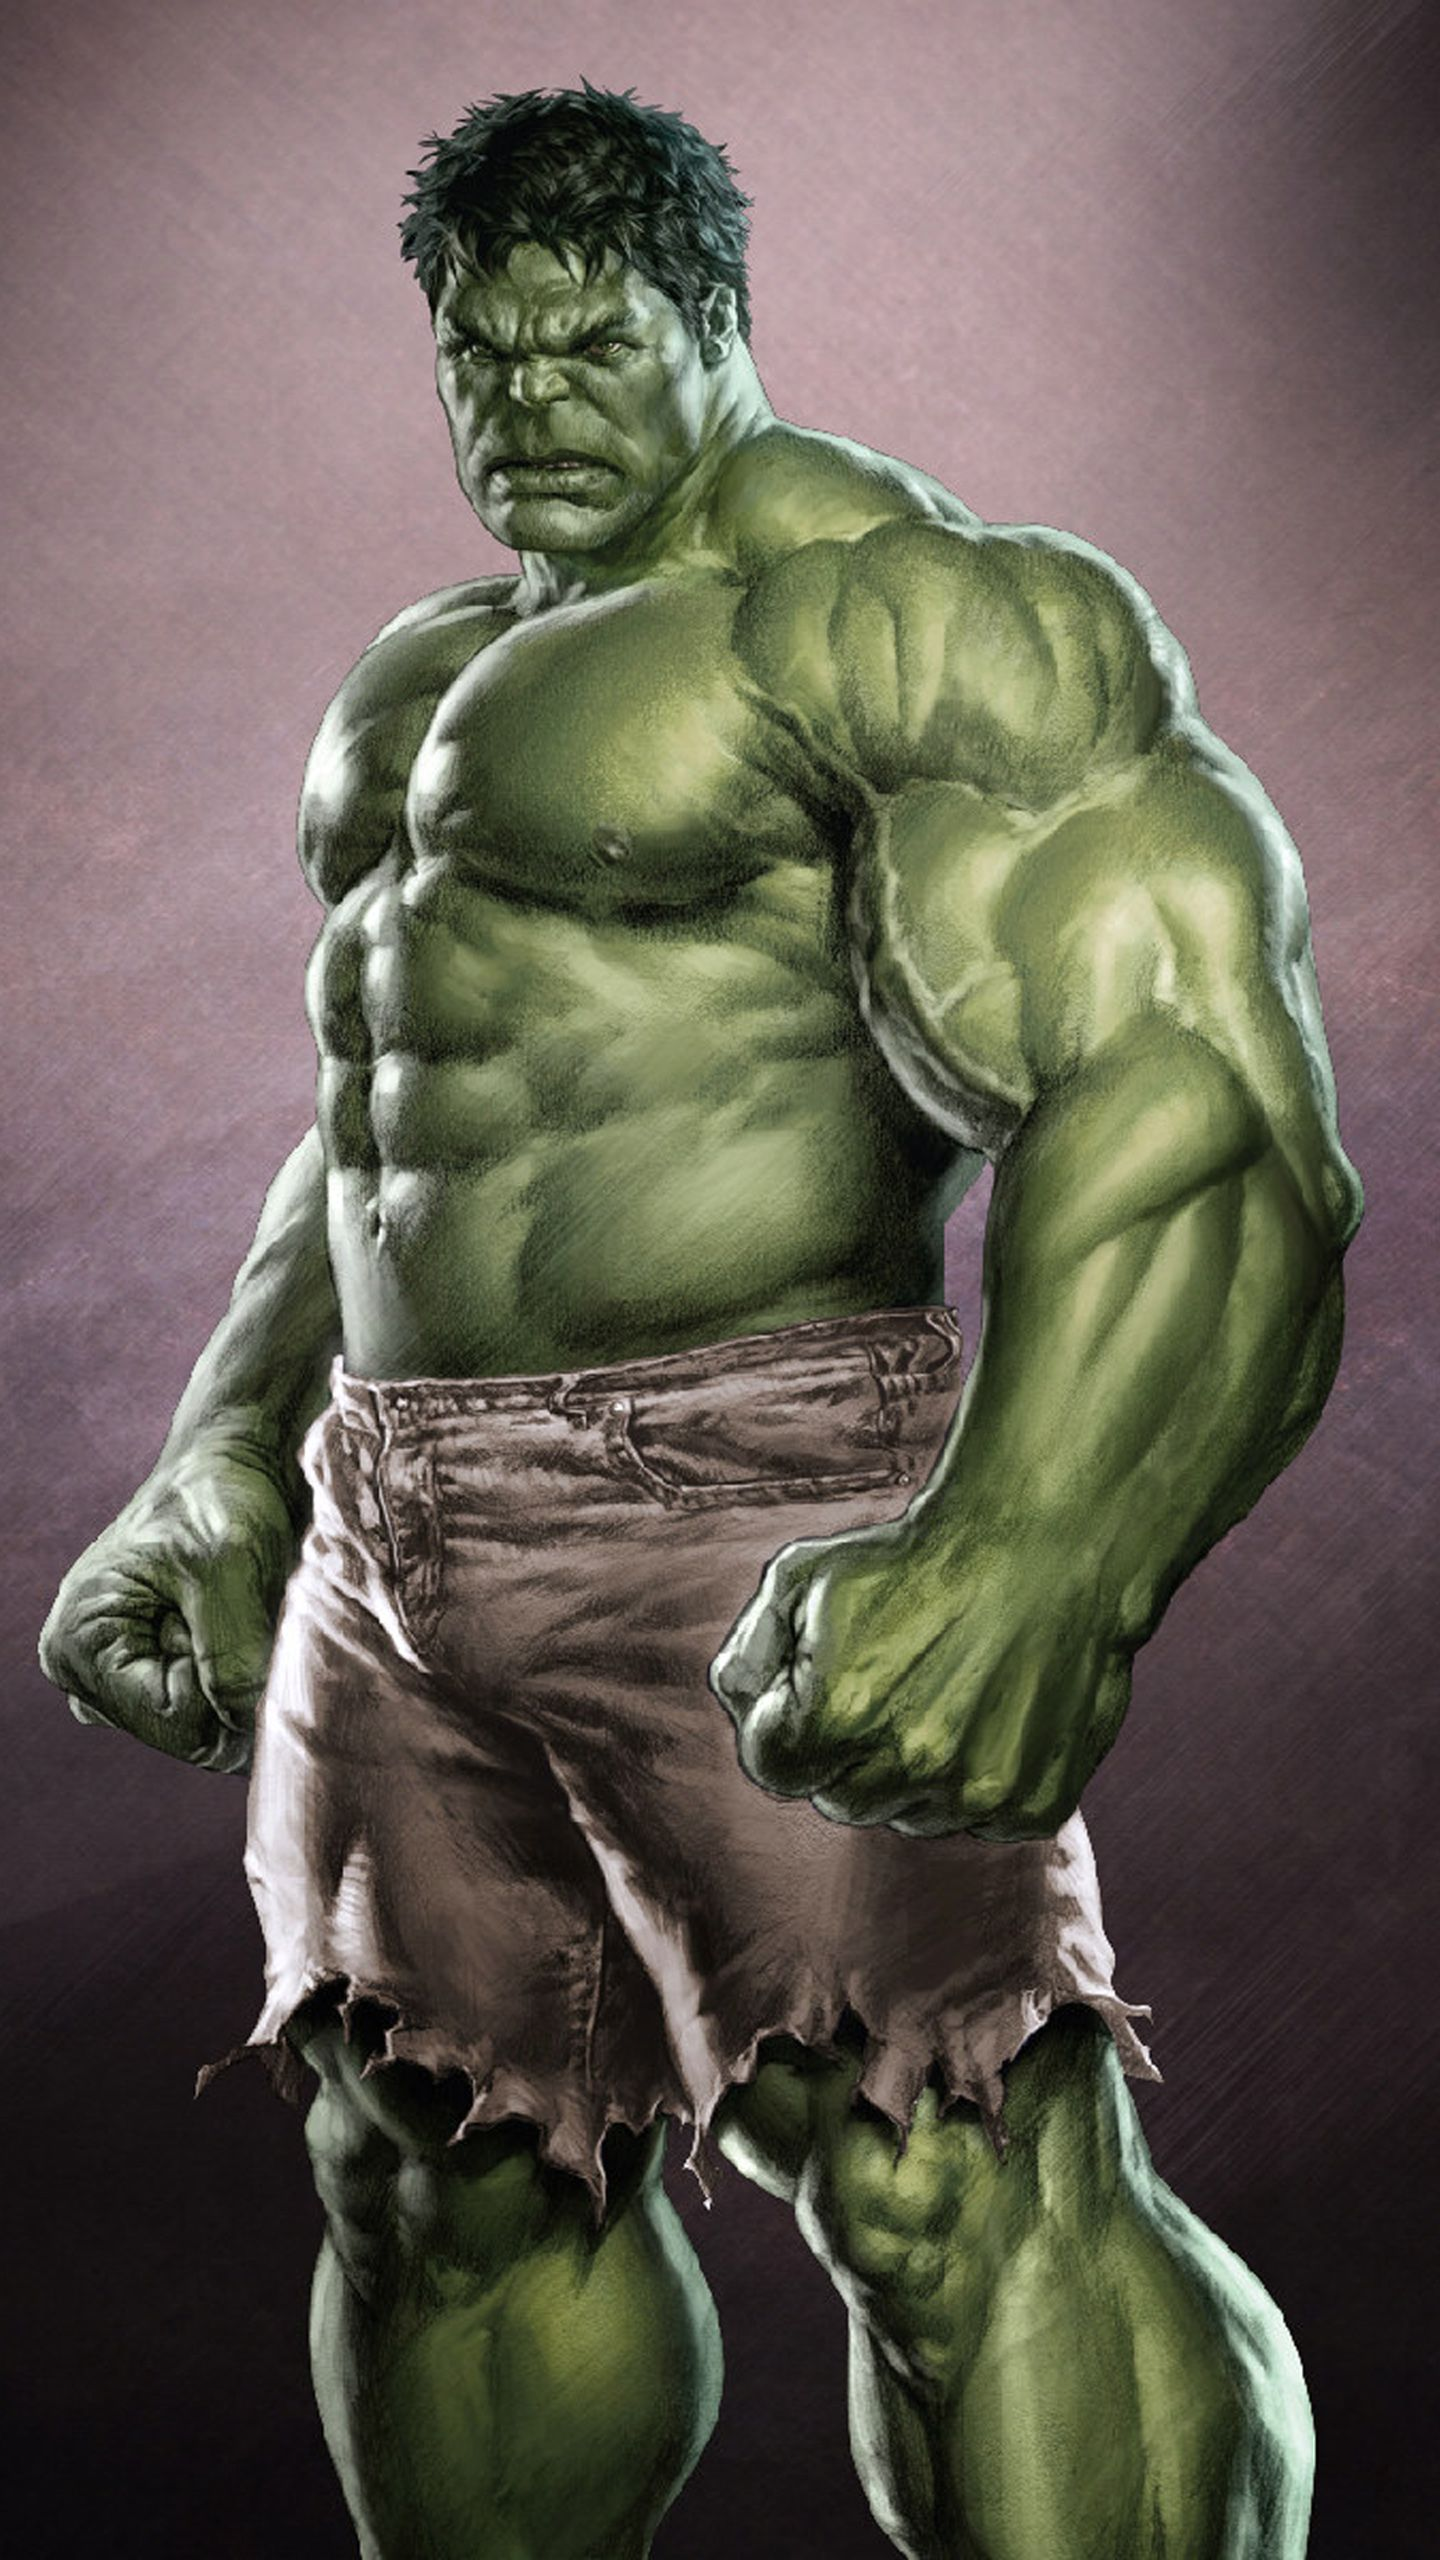 Hulk Android Wallpapers - Top Free Hulk Android Backgrounds